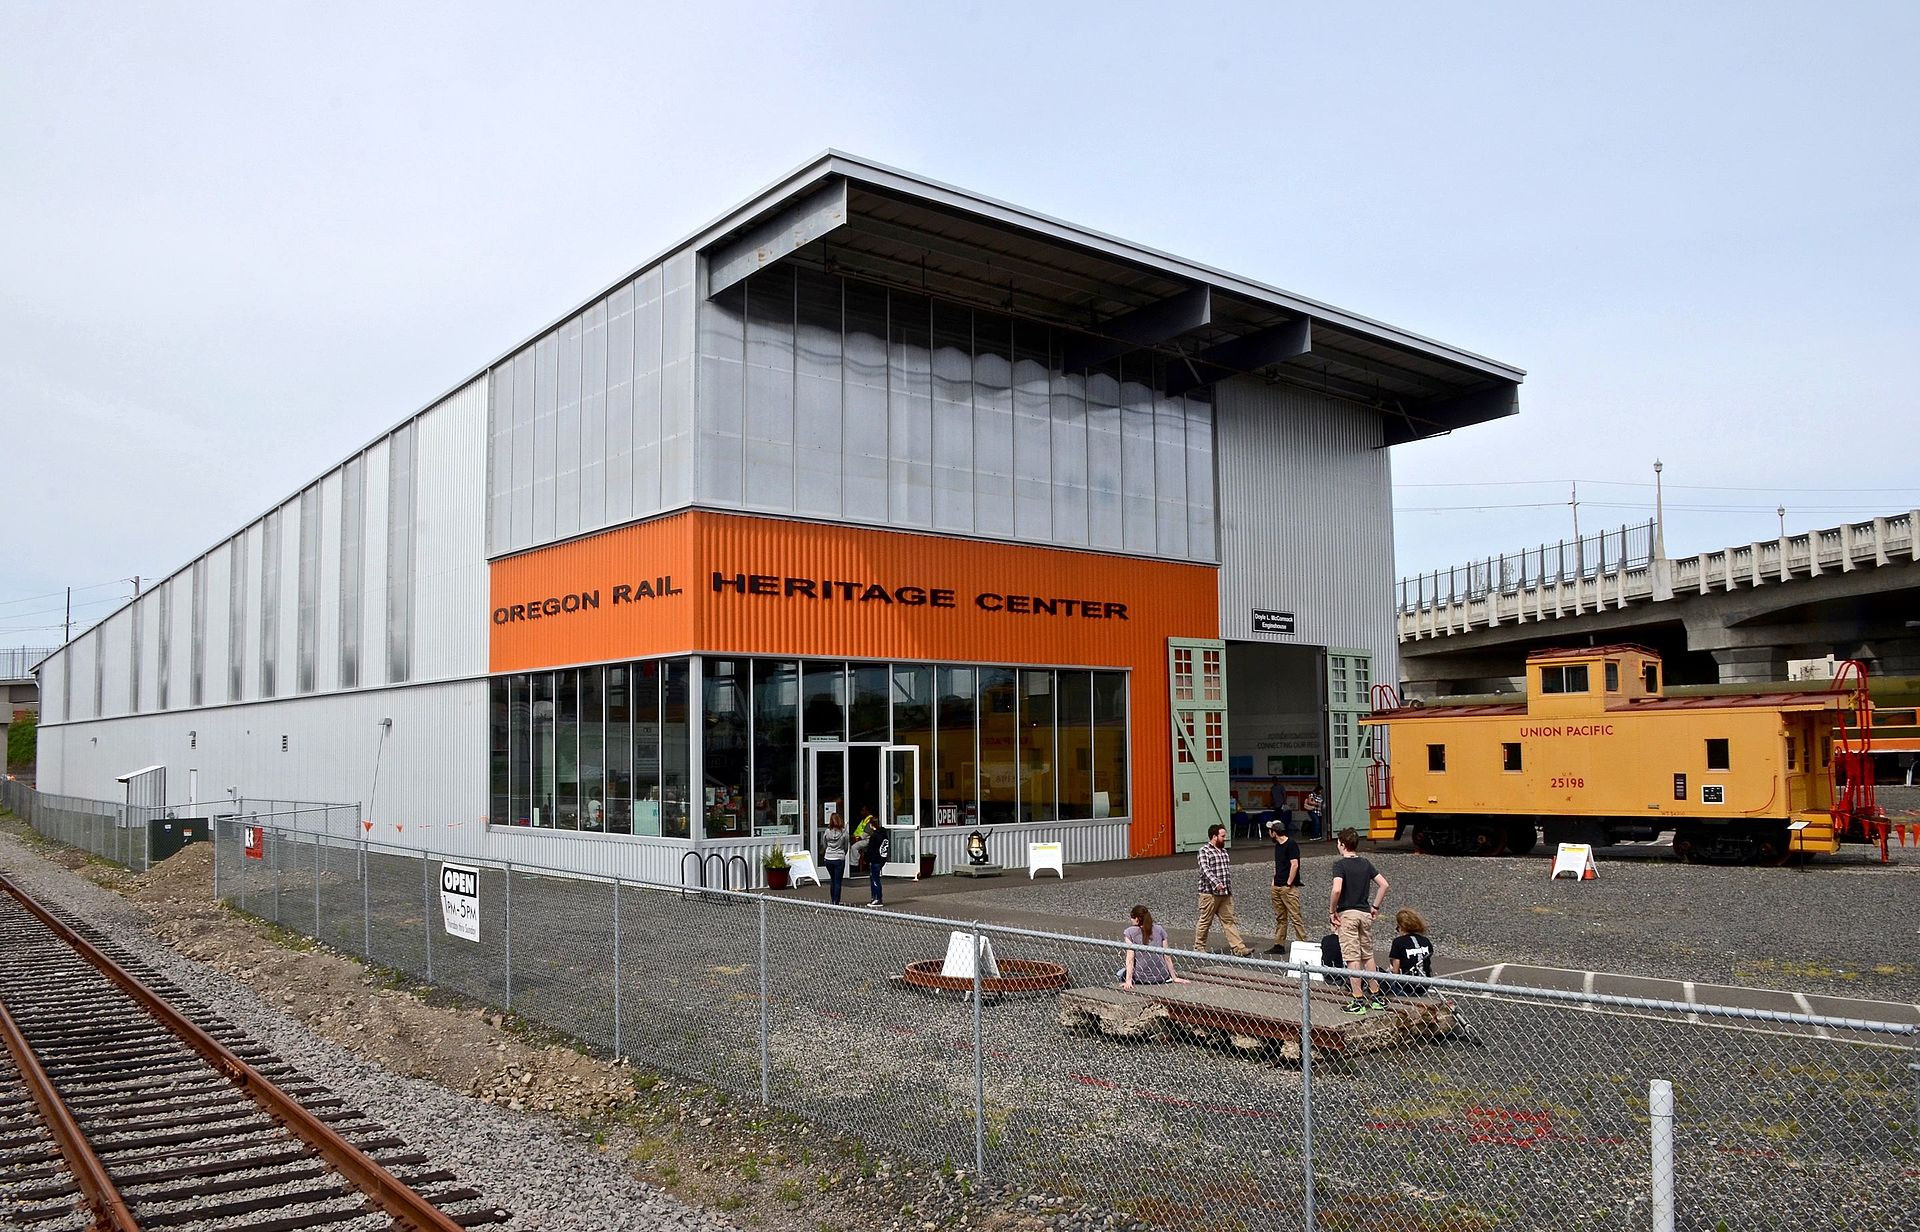 The Oregon Rail Heritage Center opened 2012 and features a number of historic rolling stock including the Southern Pacific 4449; the Spokane, Portland & Seattle 200; and the Oregon Railway & Navigation 197.